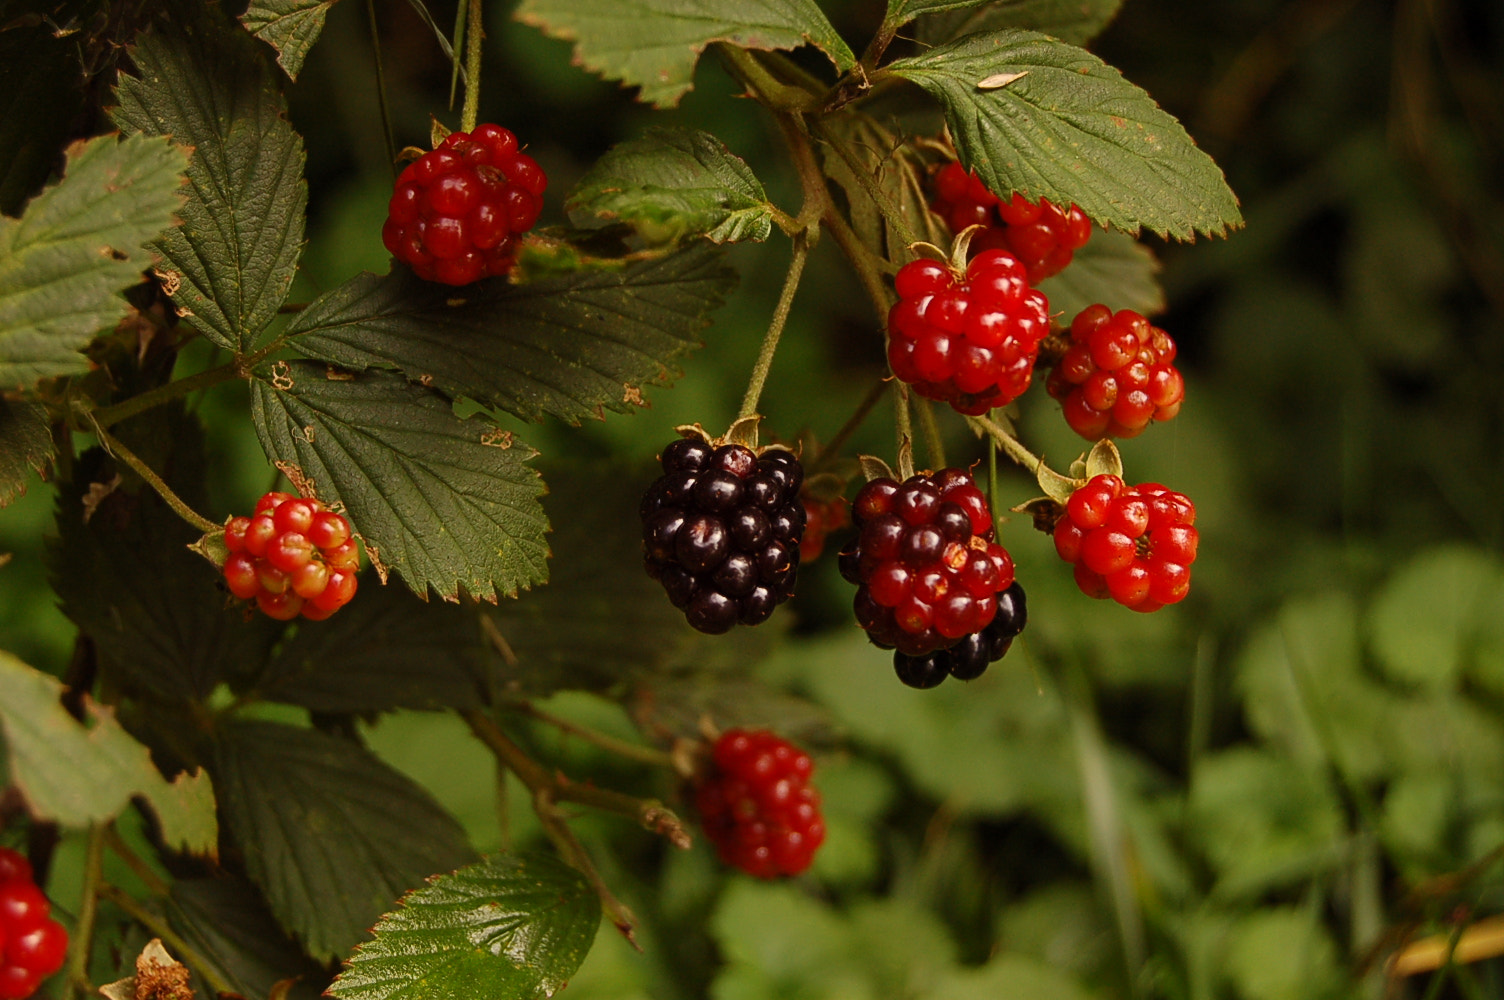 Photograph Blackberries by Bethany Clara on 500px